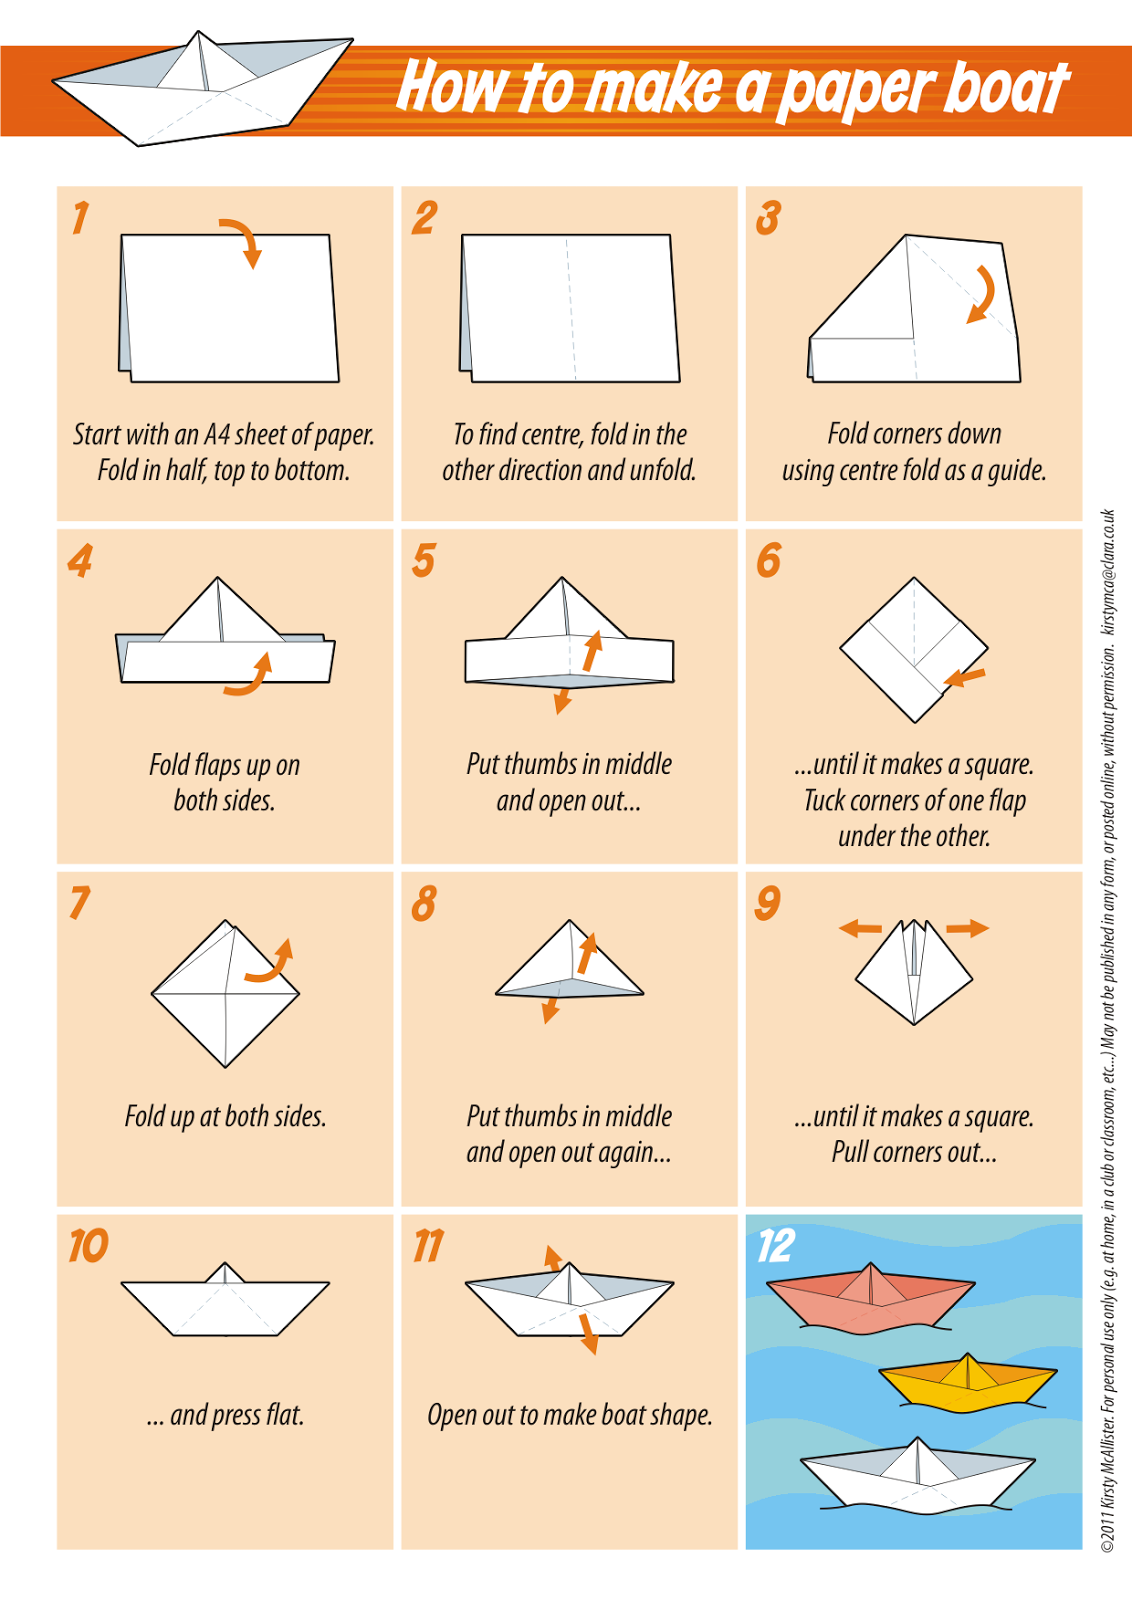 Great tips and tricks for folding all kinds of things just a paper boat add animal crackers for snack jeuxipadfo Image collections